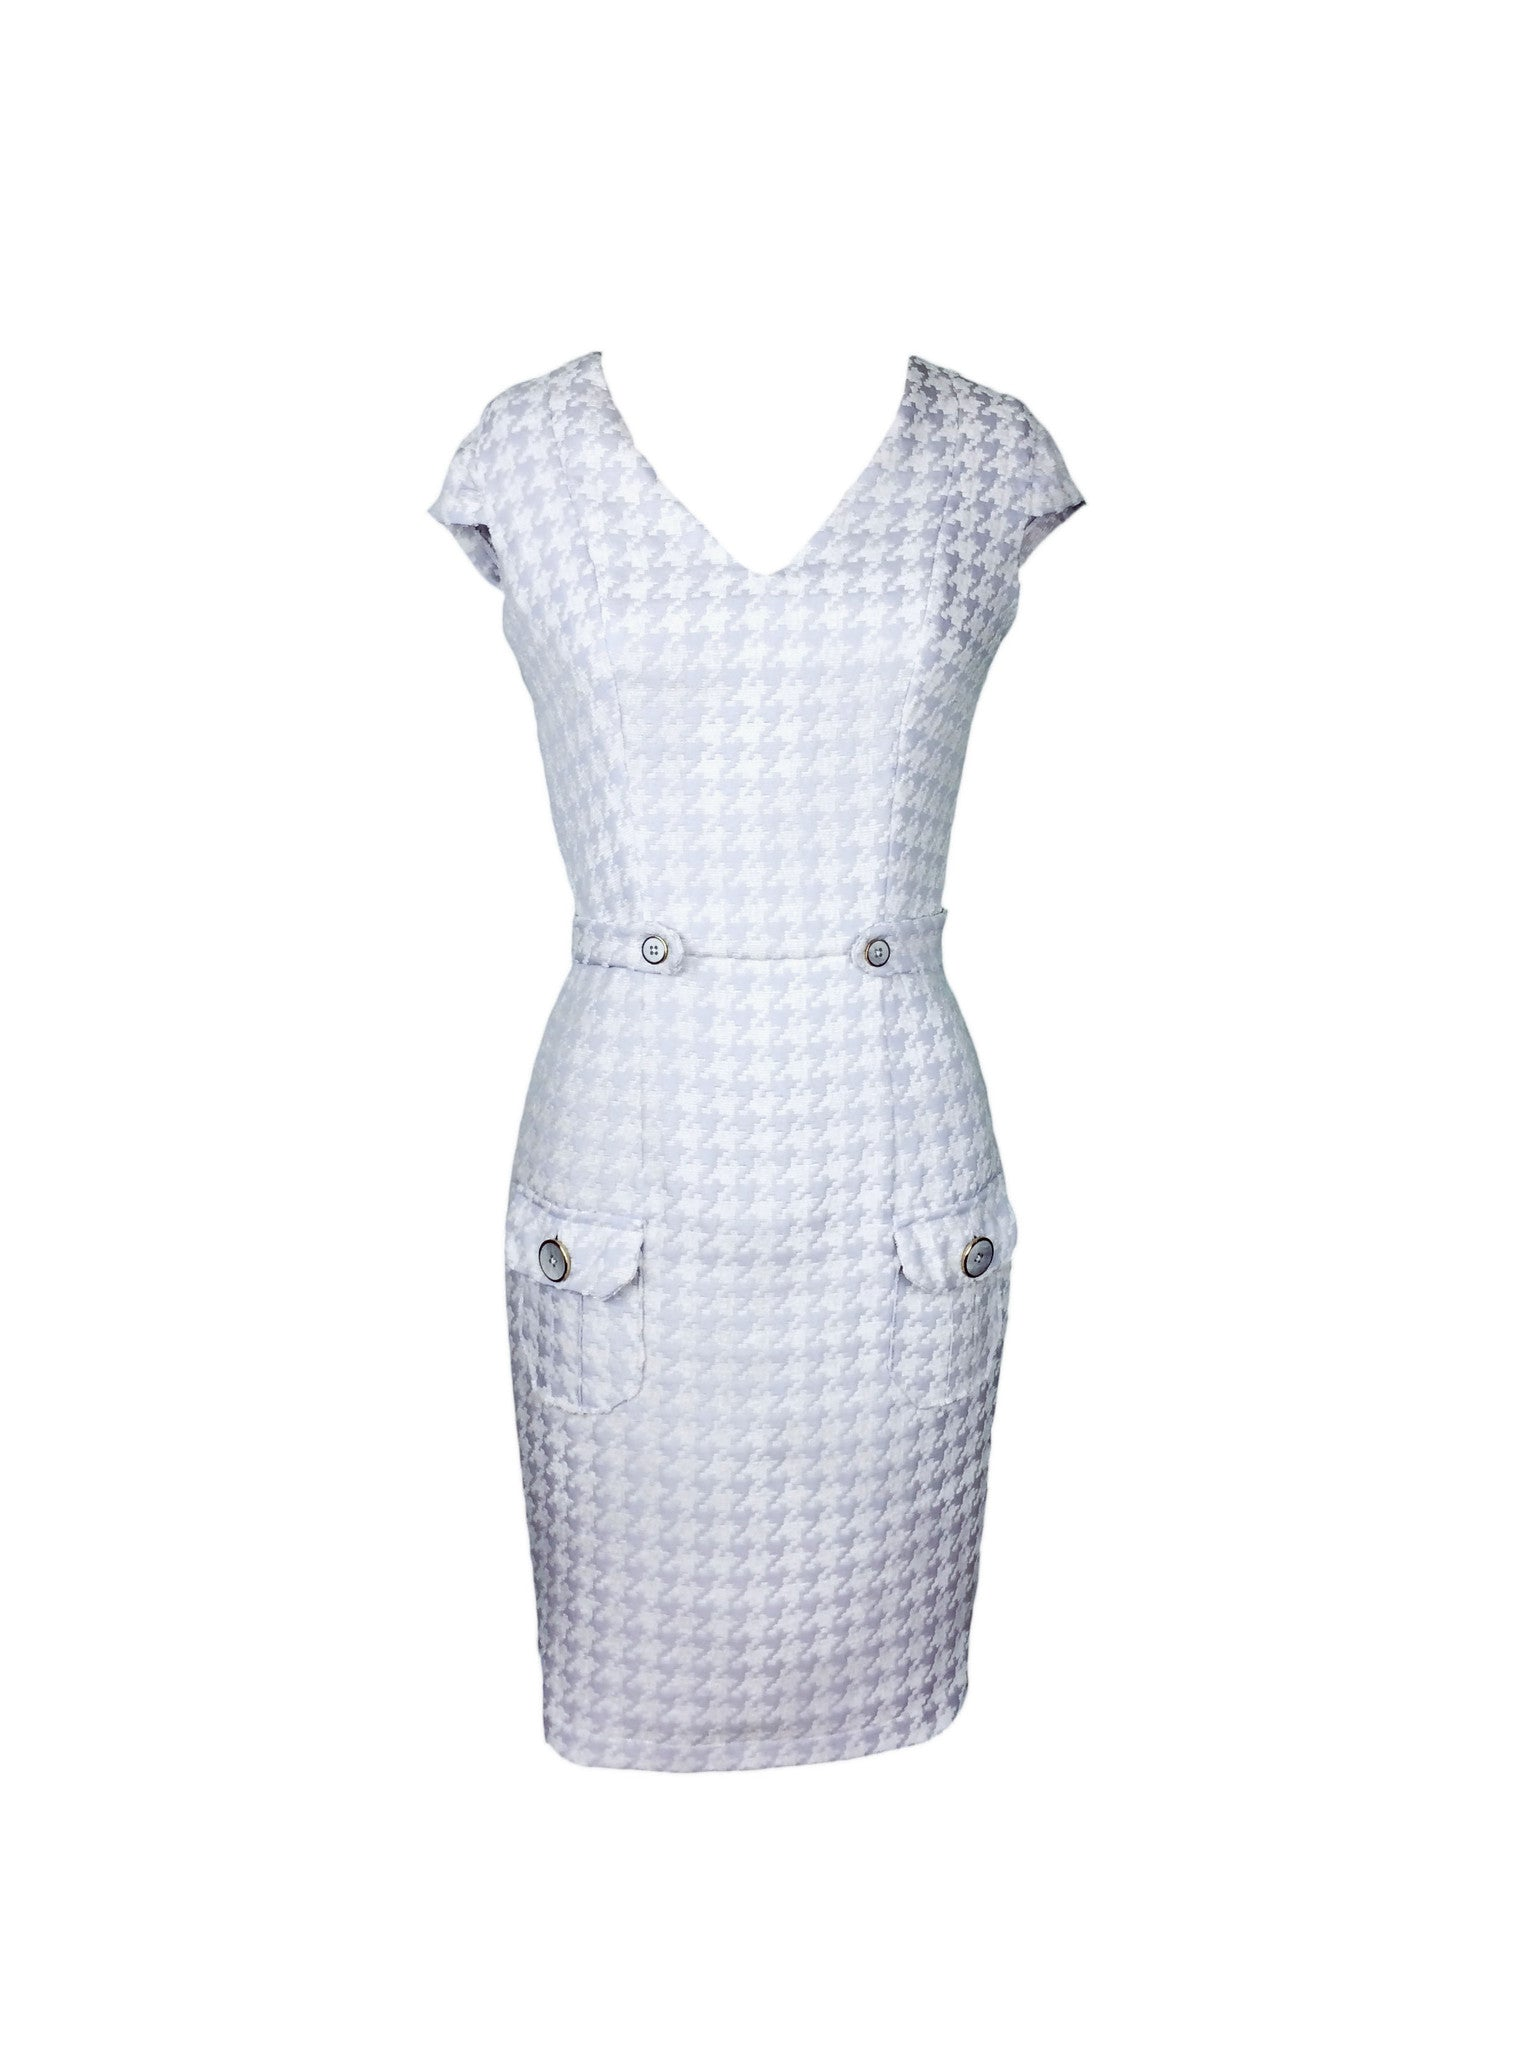 Houndstooth V-neck Dress - Steve Guthrie